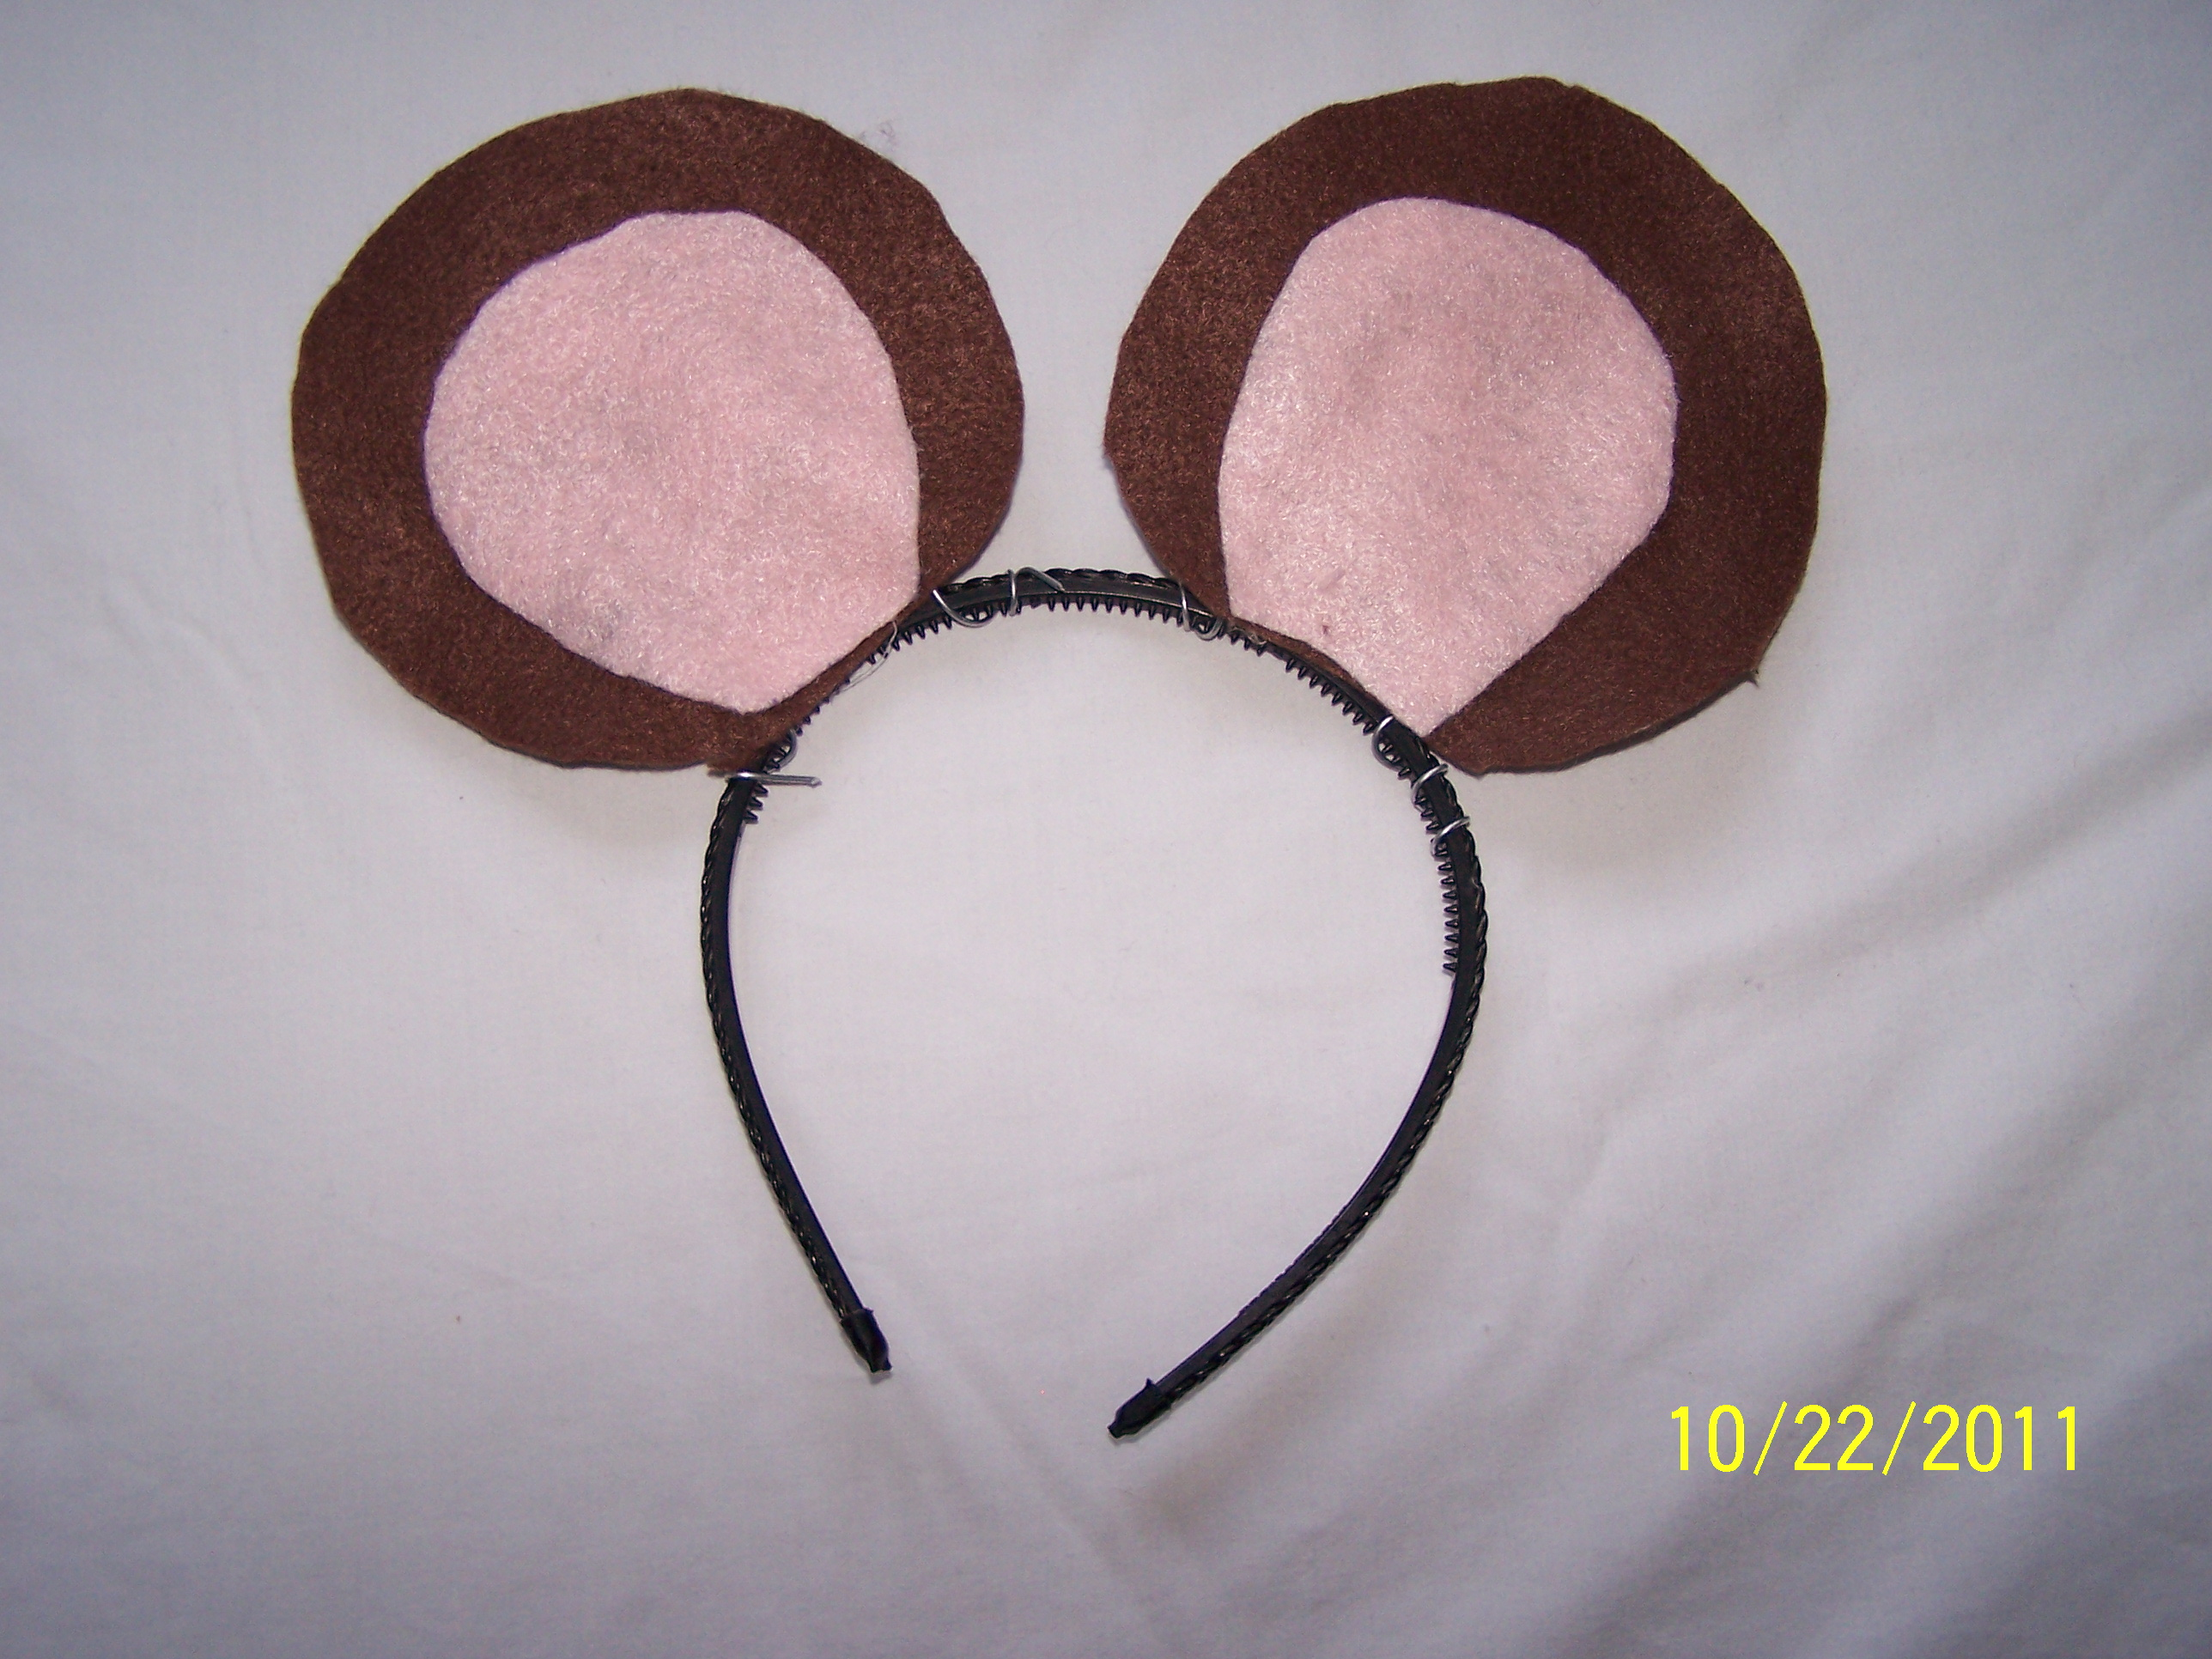 Picture of Attaching the Ears to the Headband